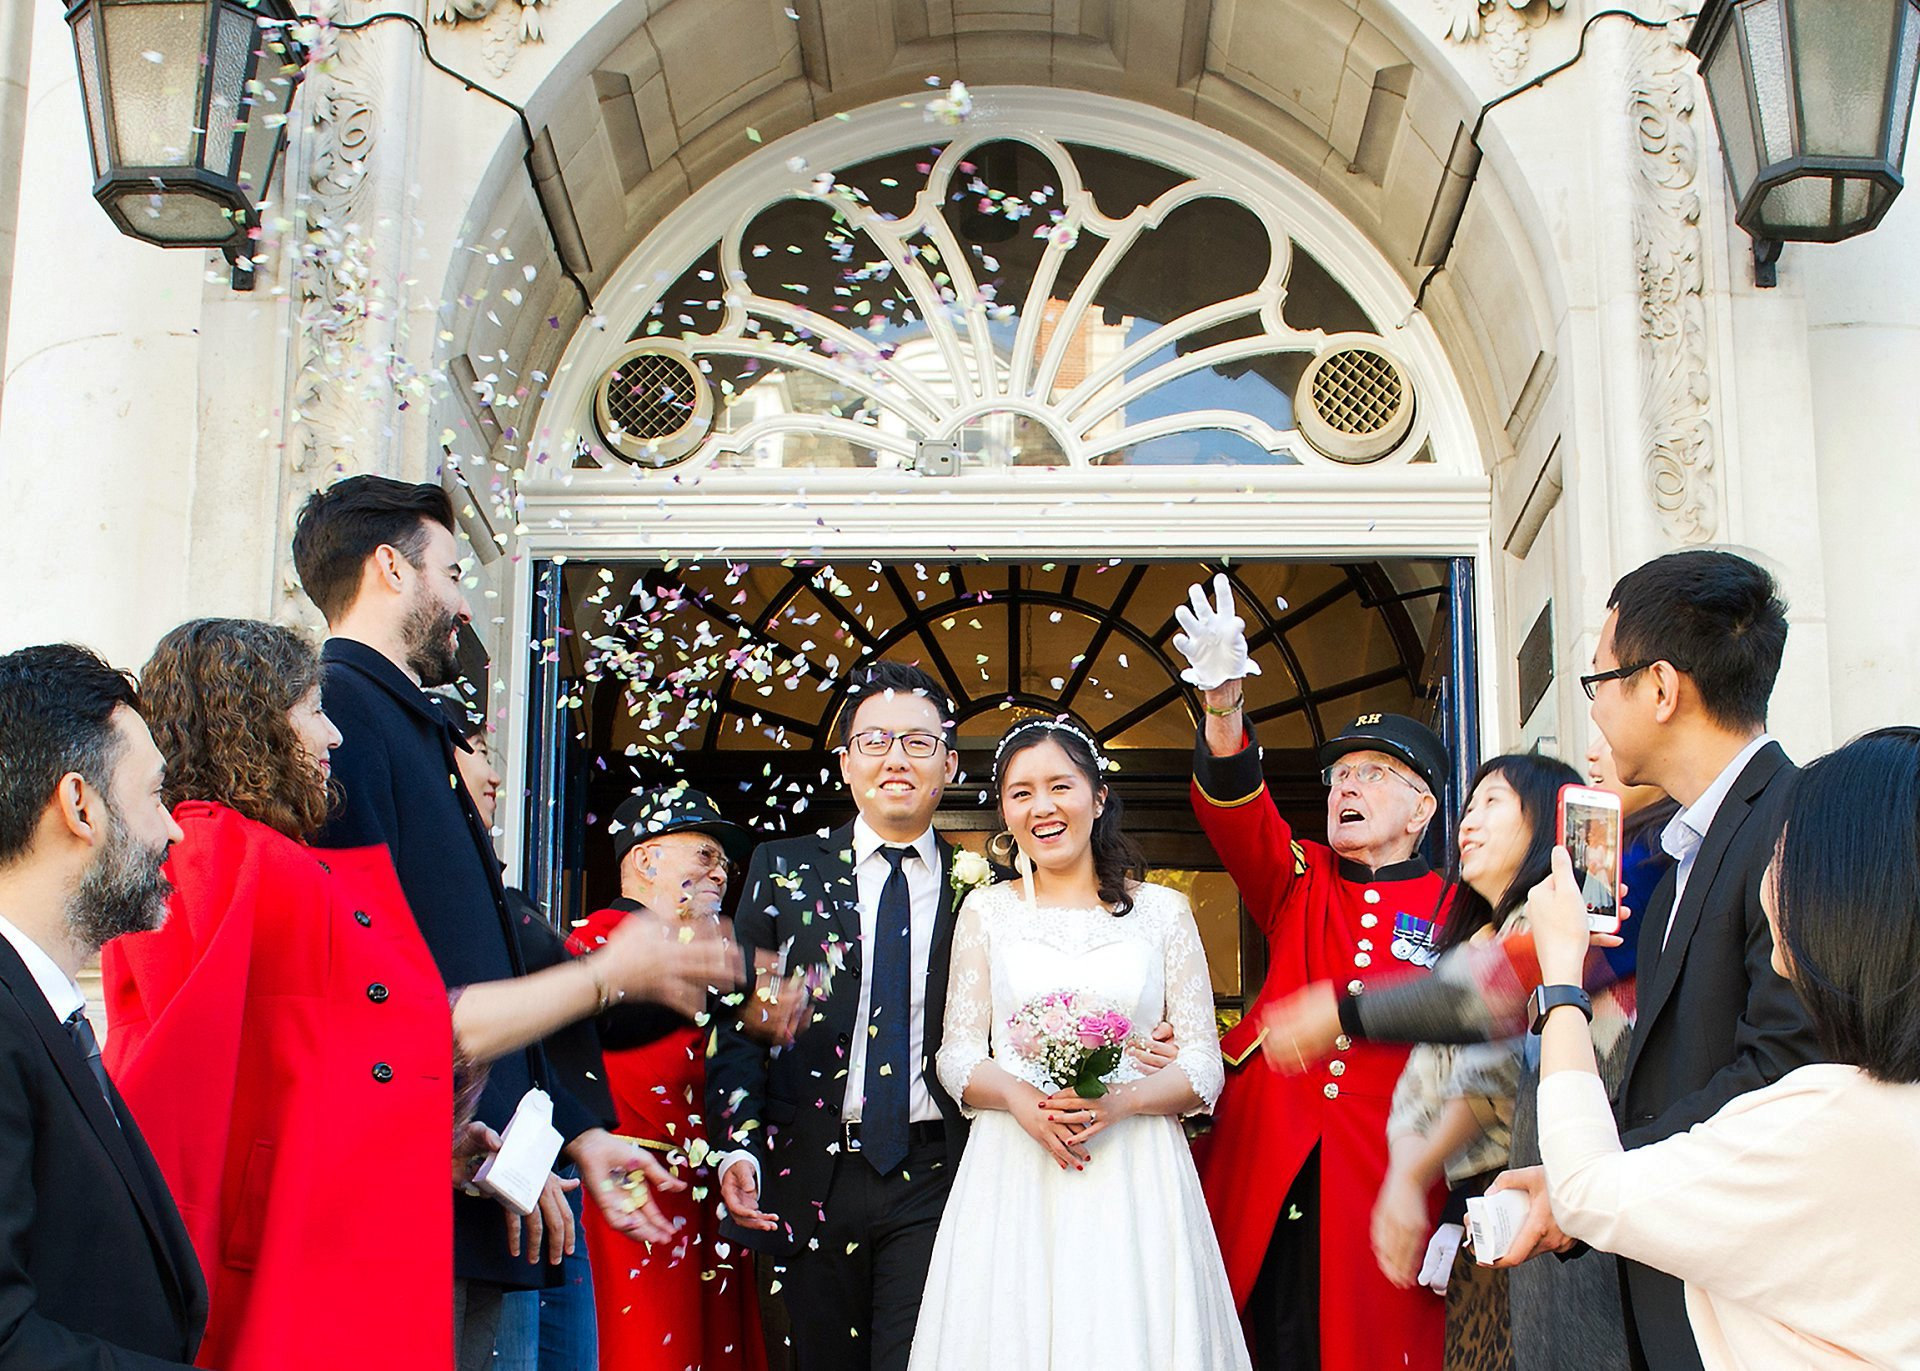 chinese wedding chelsea old town hall with the bride and groom on the famous steps with confetti